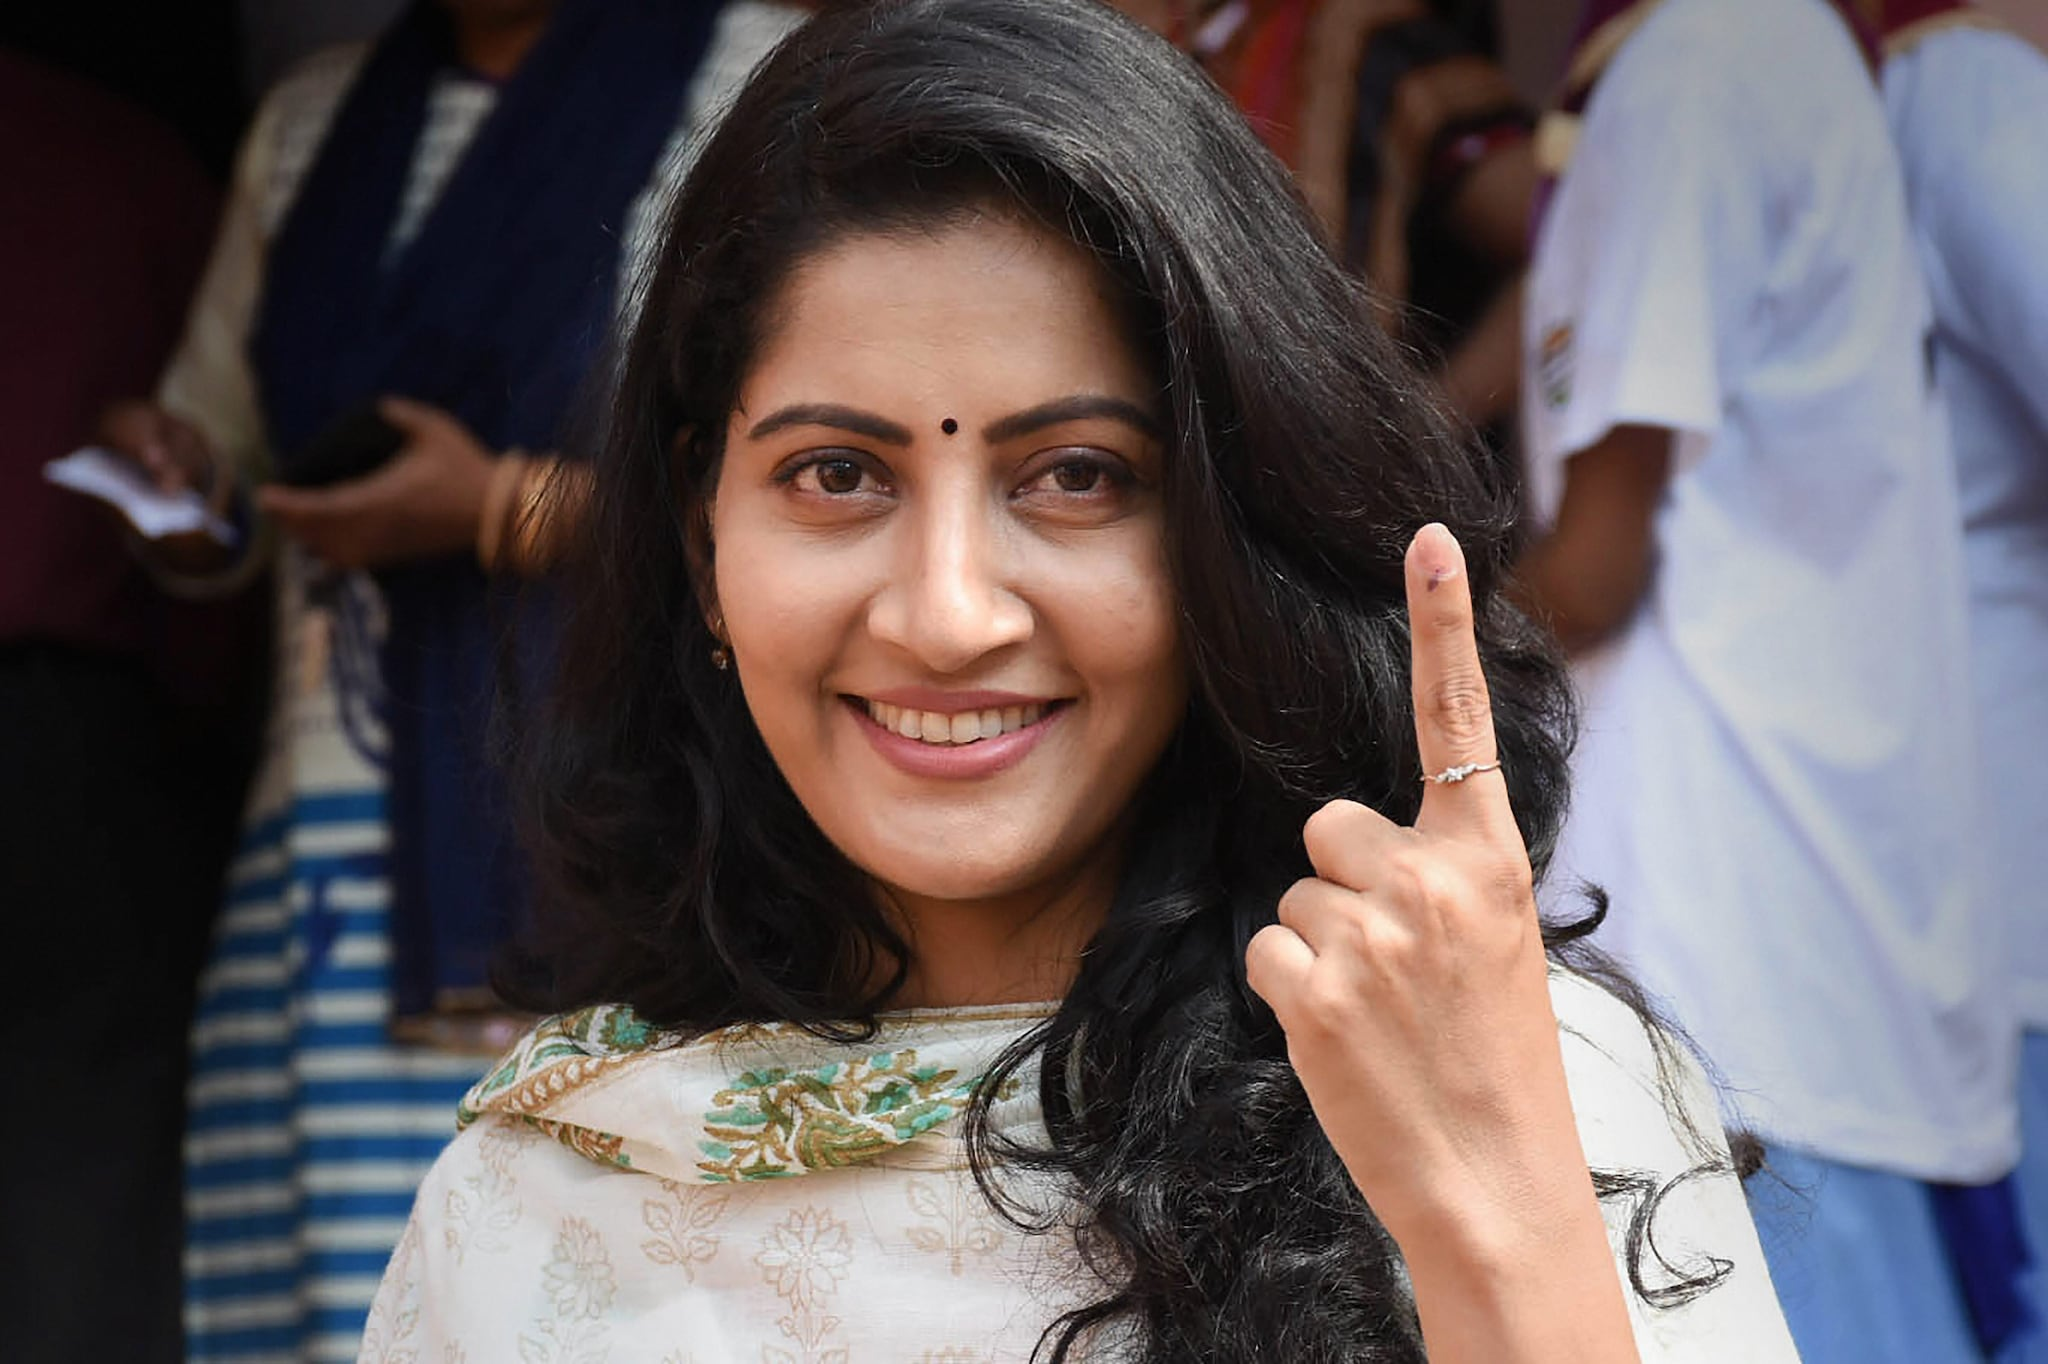 Film actor Anu Choudhury shows her inked finger after casting vote at a polling booth, during the 3rd phase of Lok Sabha elections in Bhubaneswar, Tuesday, April 23, 2019. (PTI Photo)